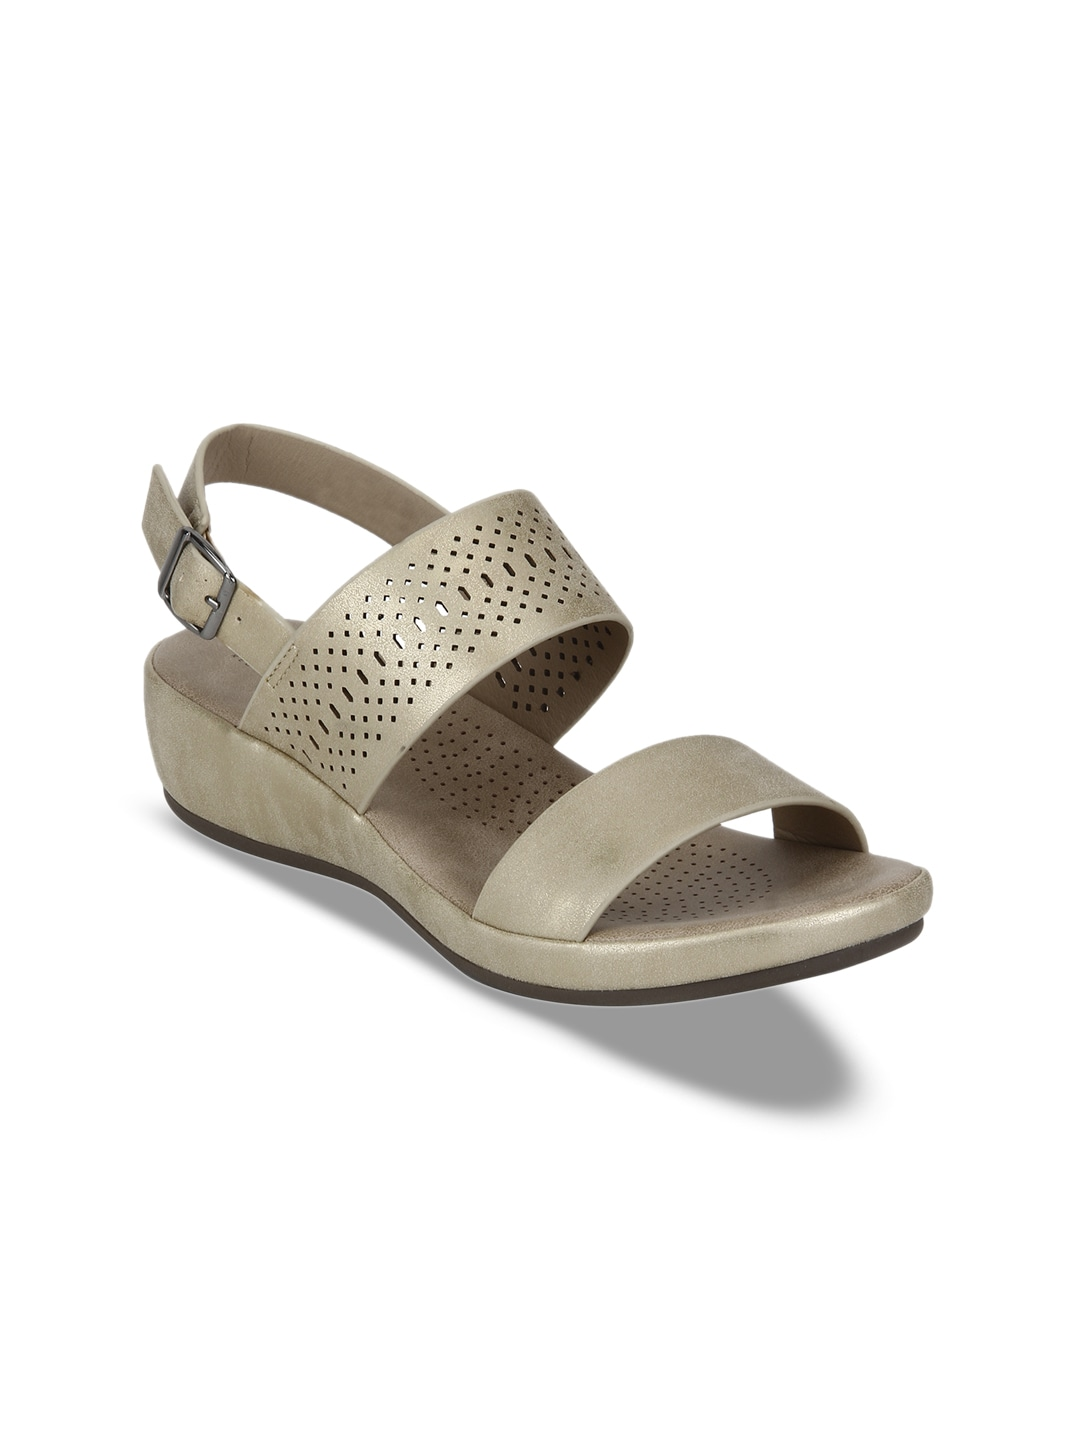 aff657617fd Mode by Red Tape Women Gold-Toned Solid Sandals